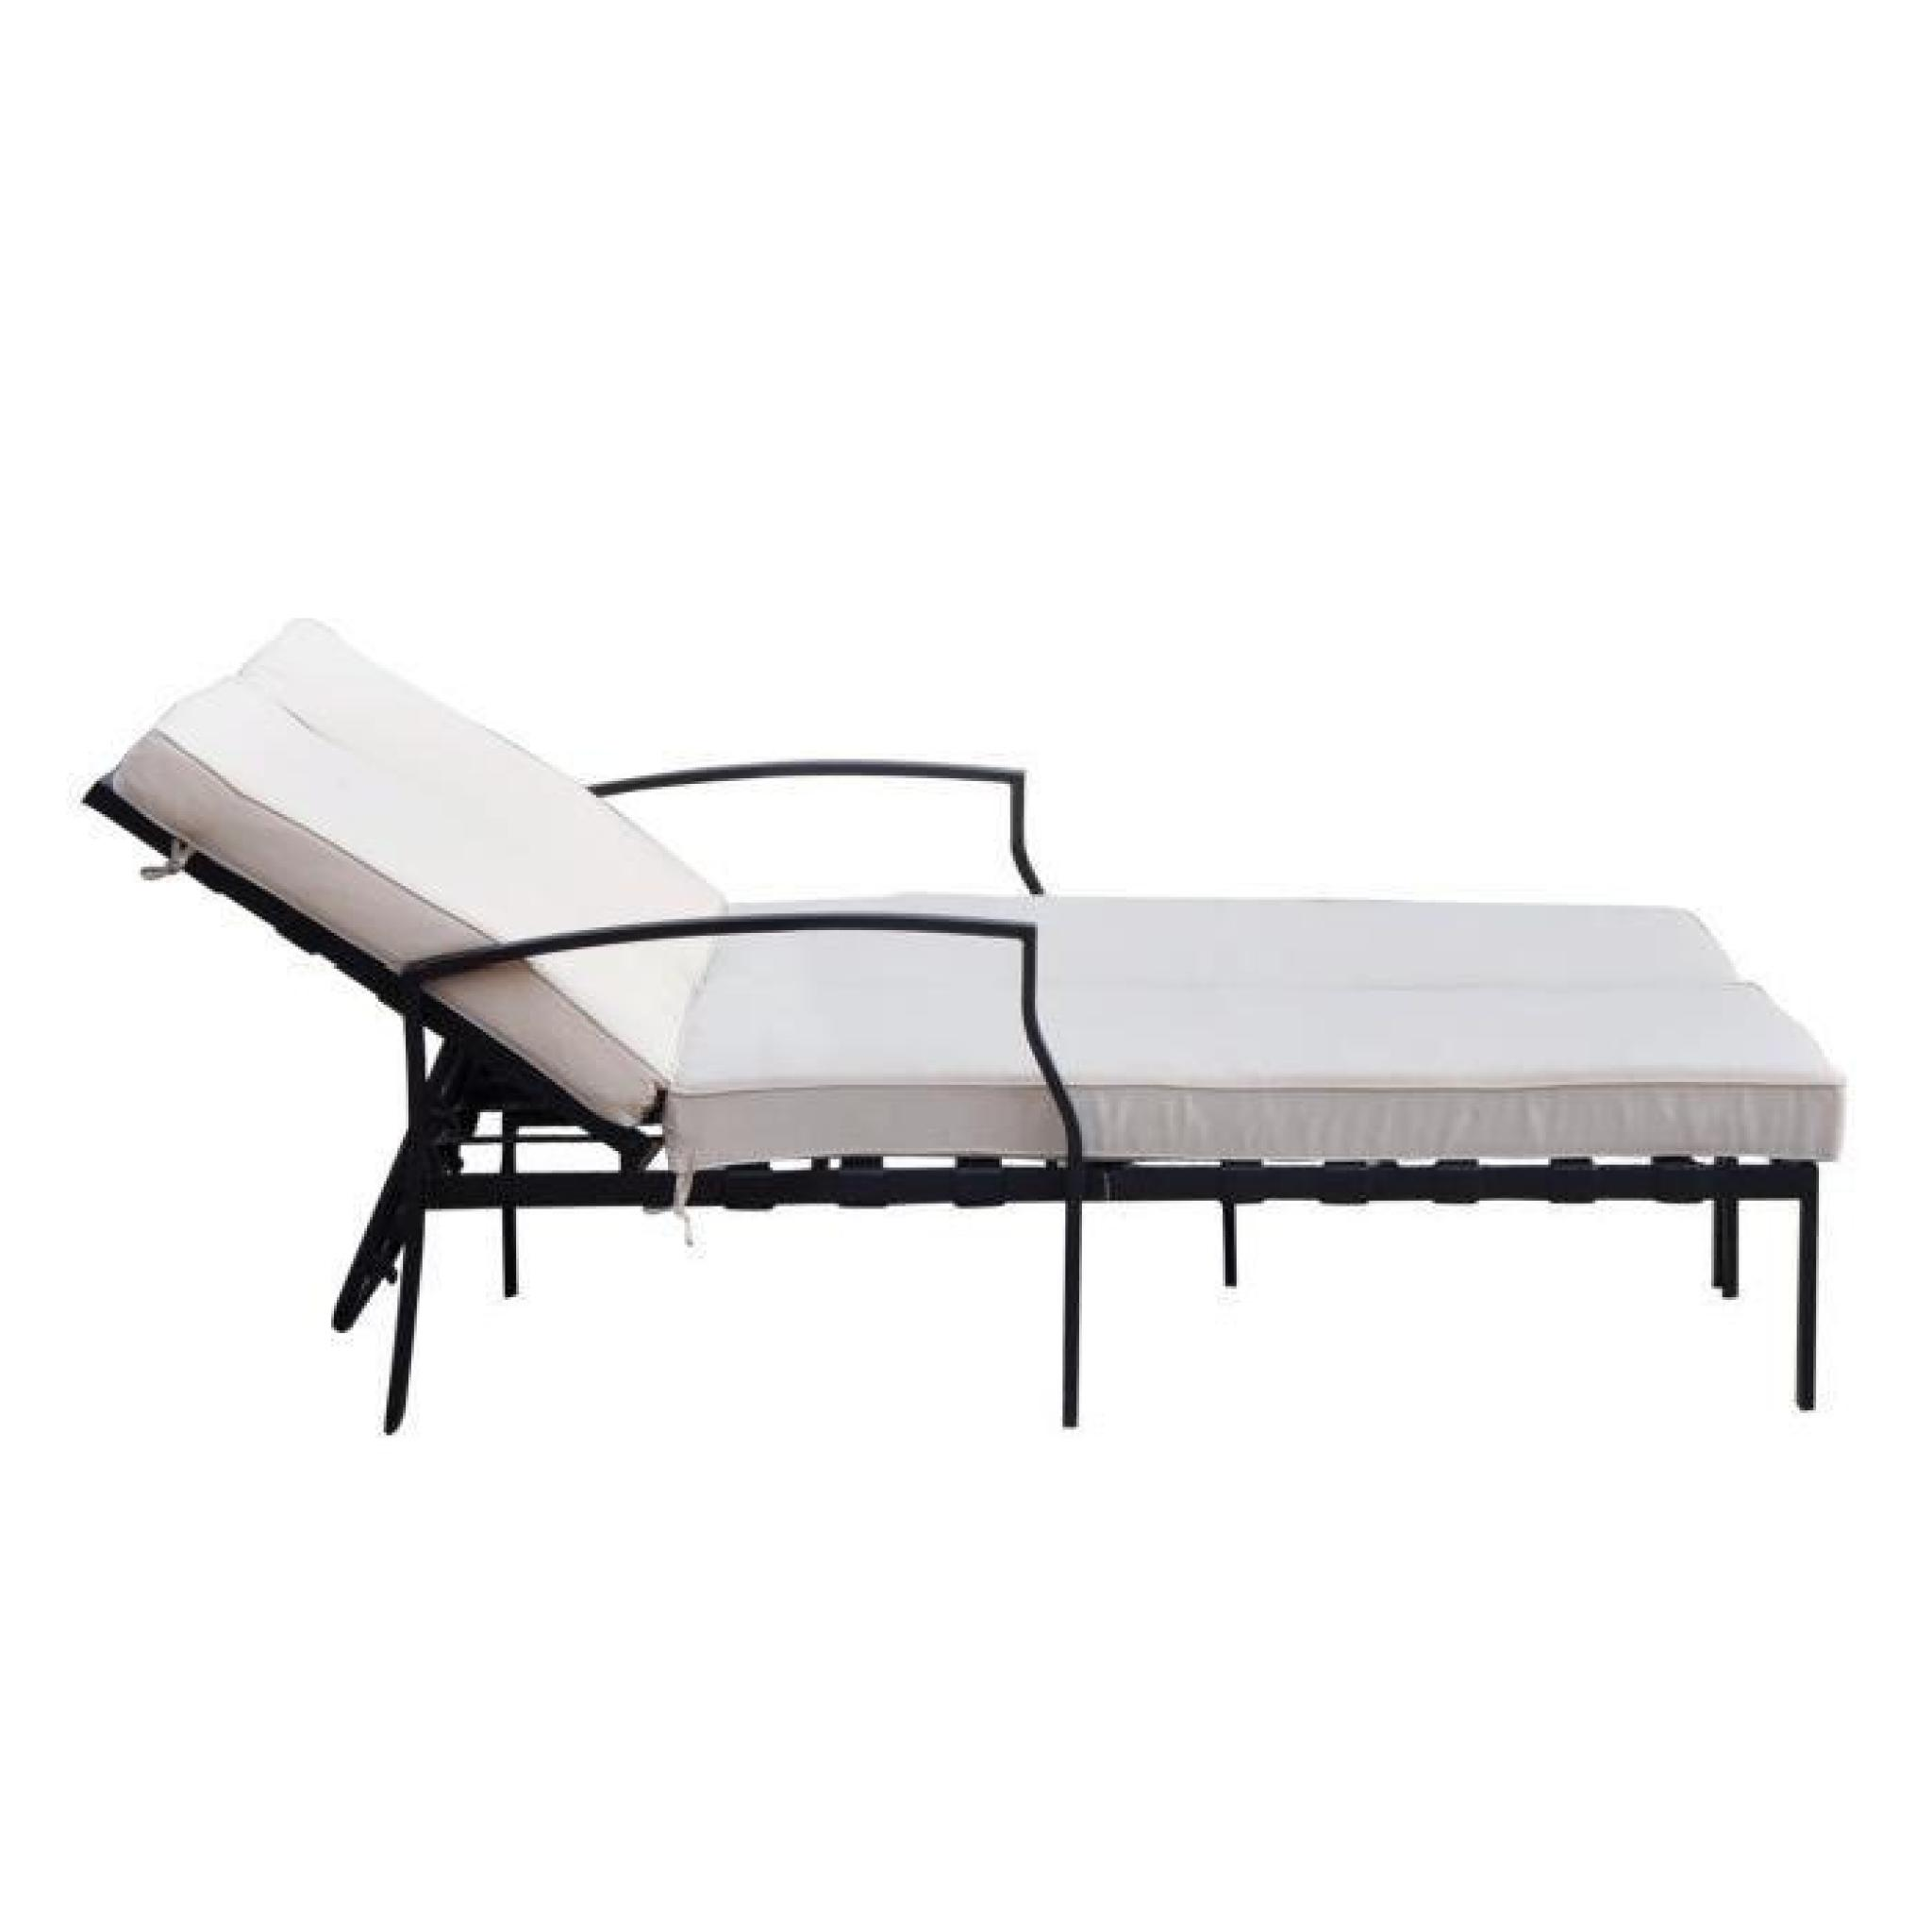 outsunny bain de soleil chaise longue places lit de jardin inclinaison rglable coussins lavables. Black Bedroom Furniture Sets. Home Design Ideas